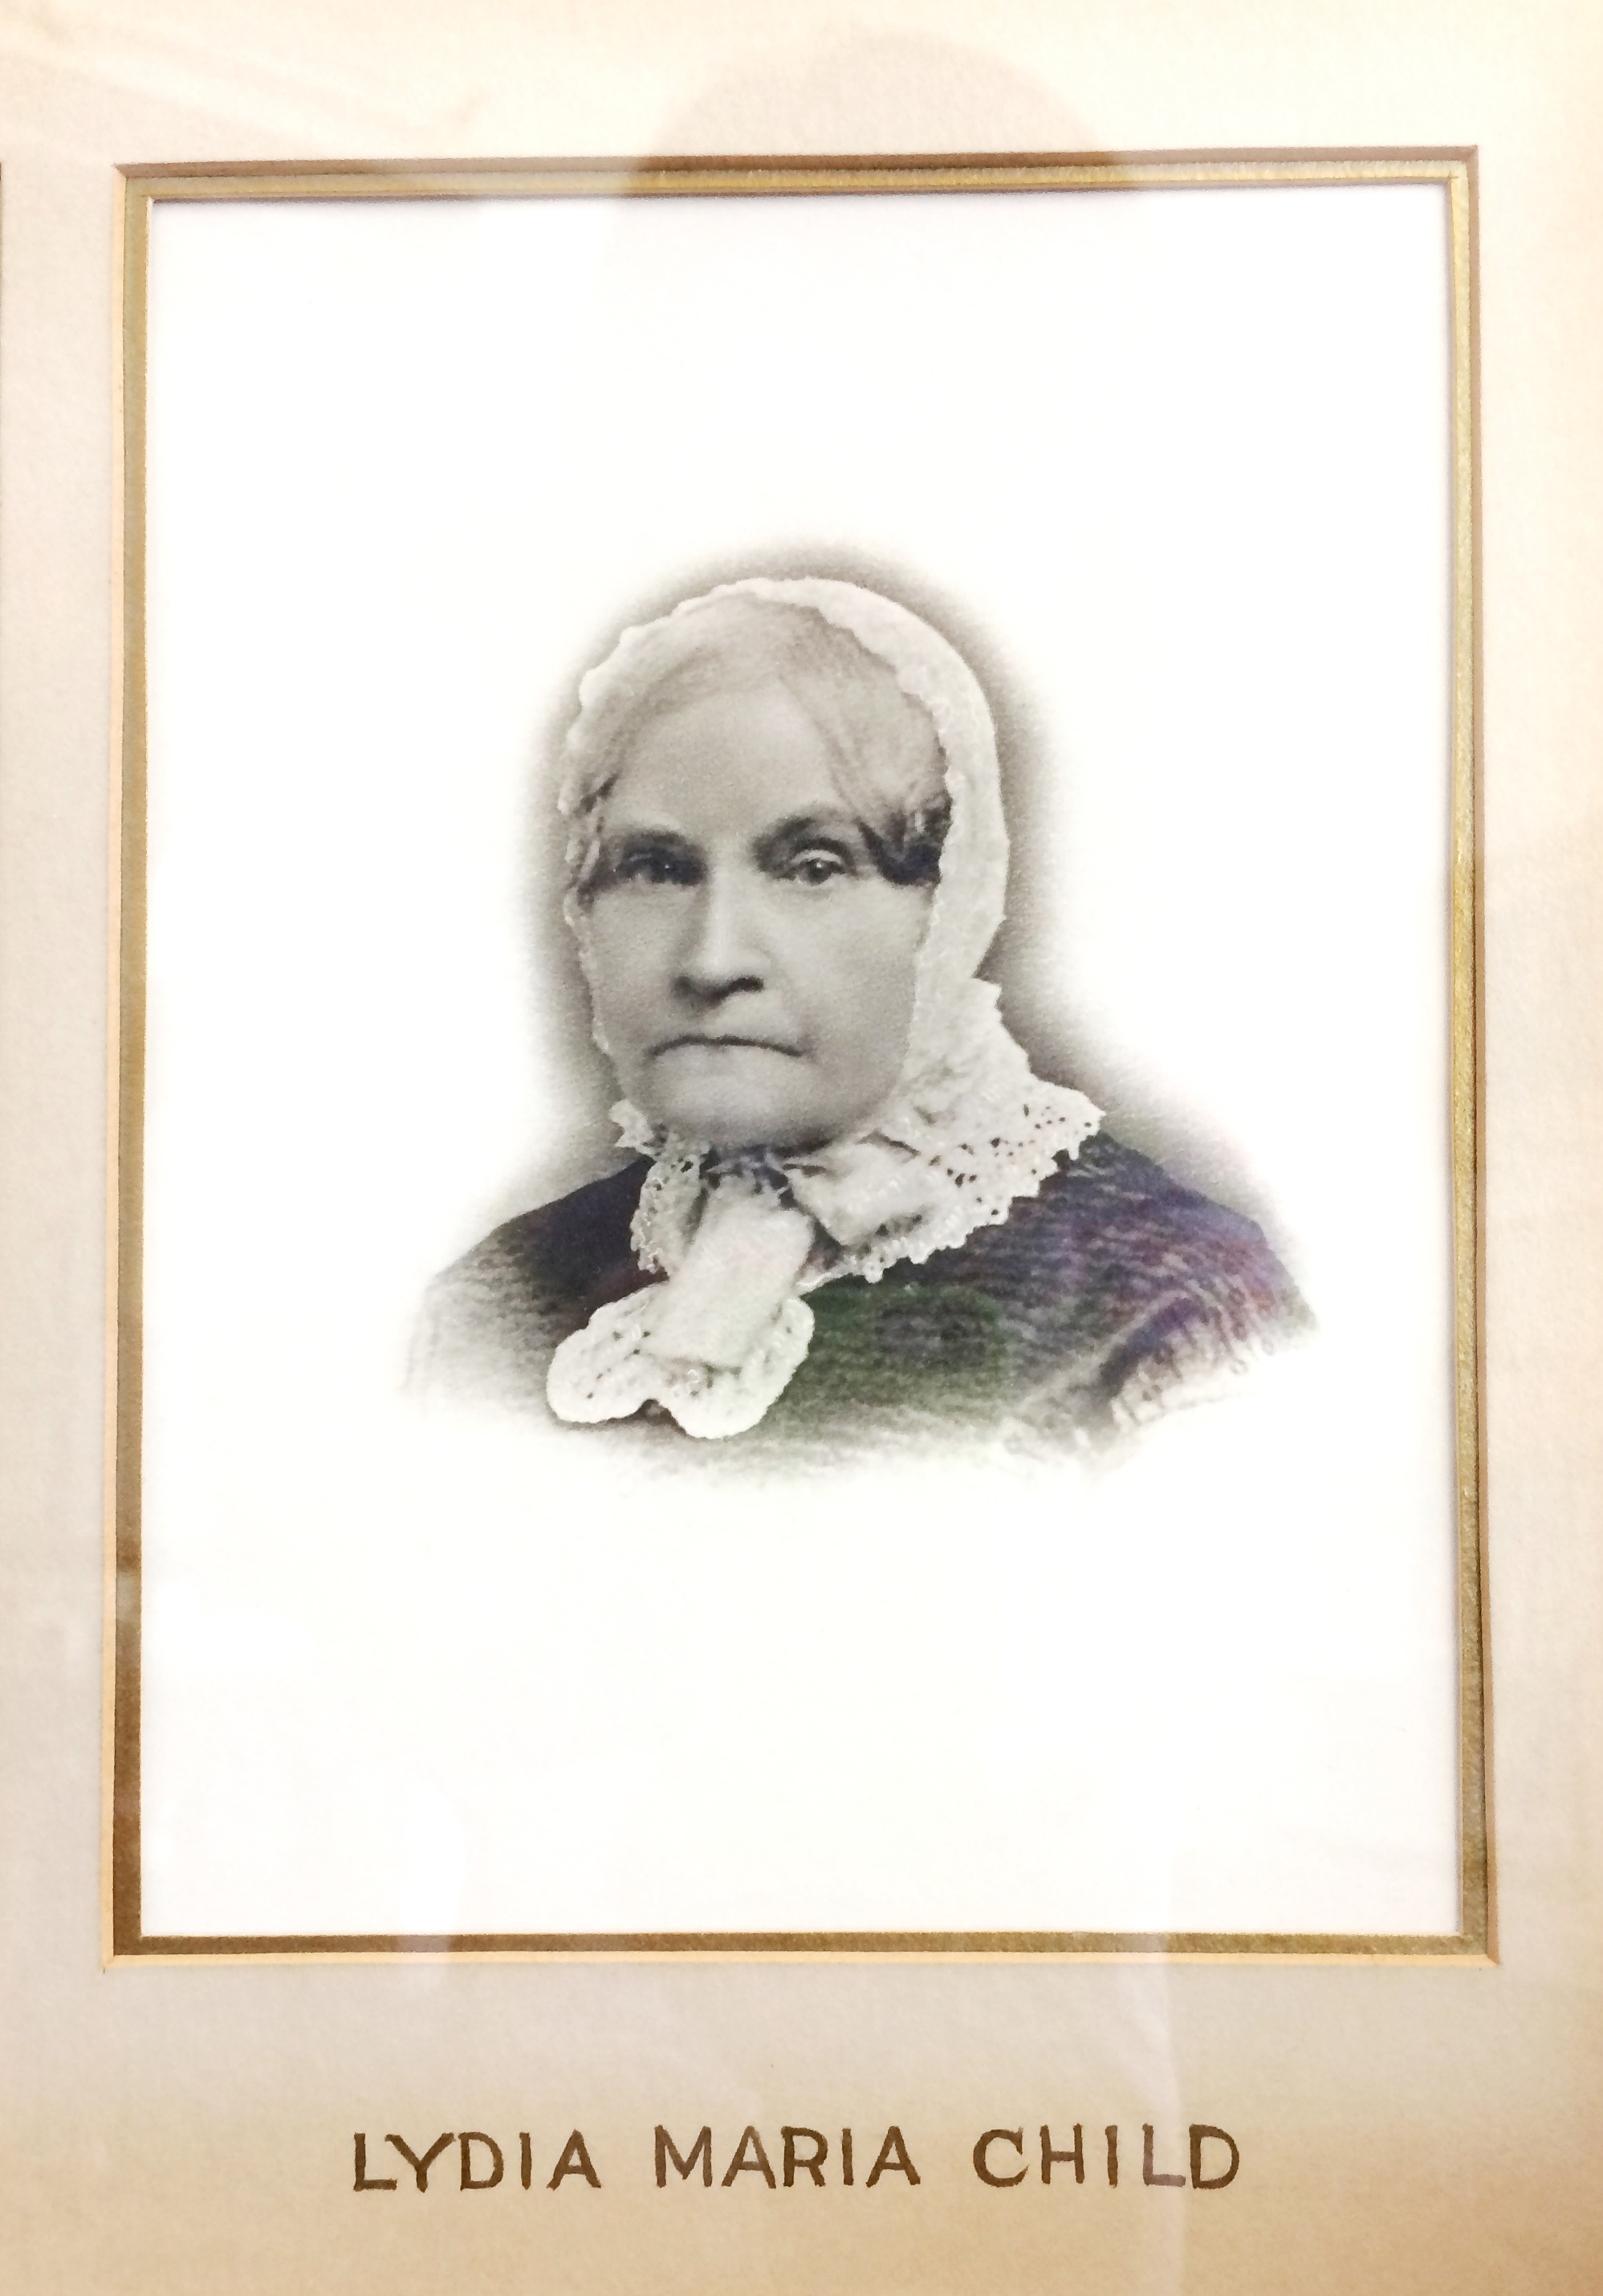 Image of Lydia Marie Child